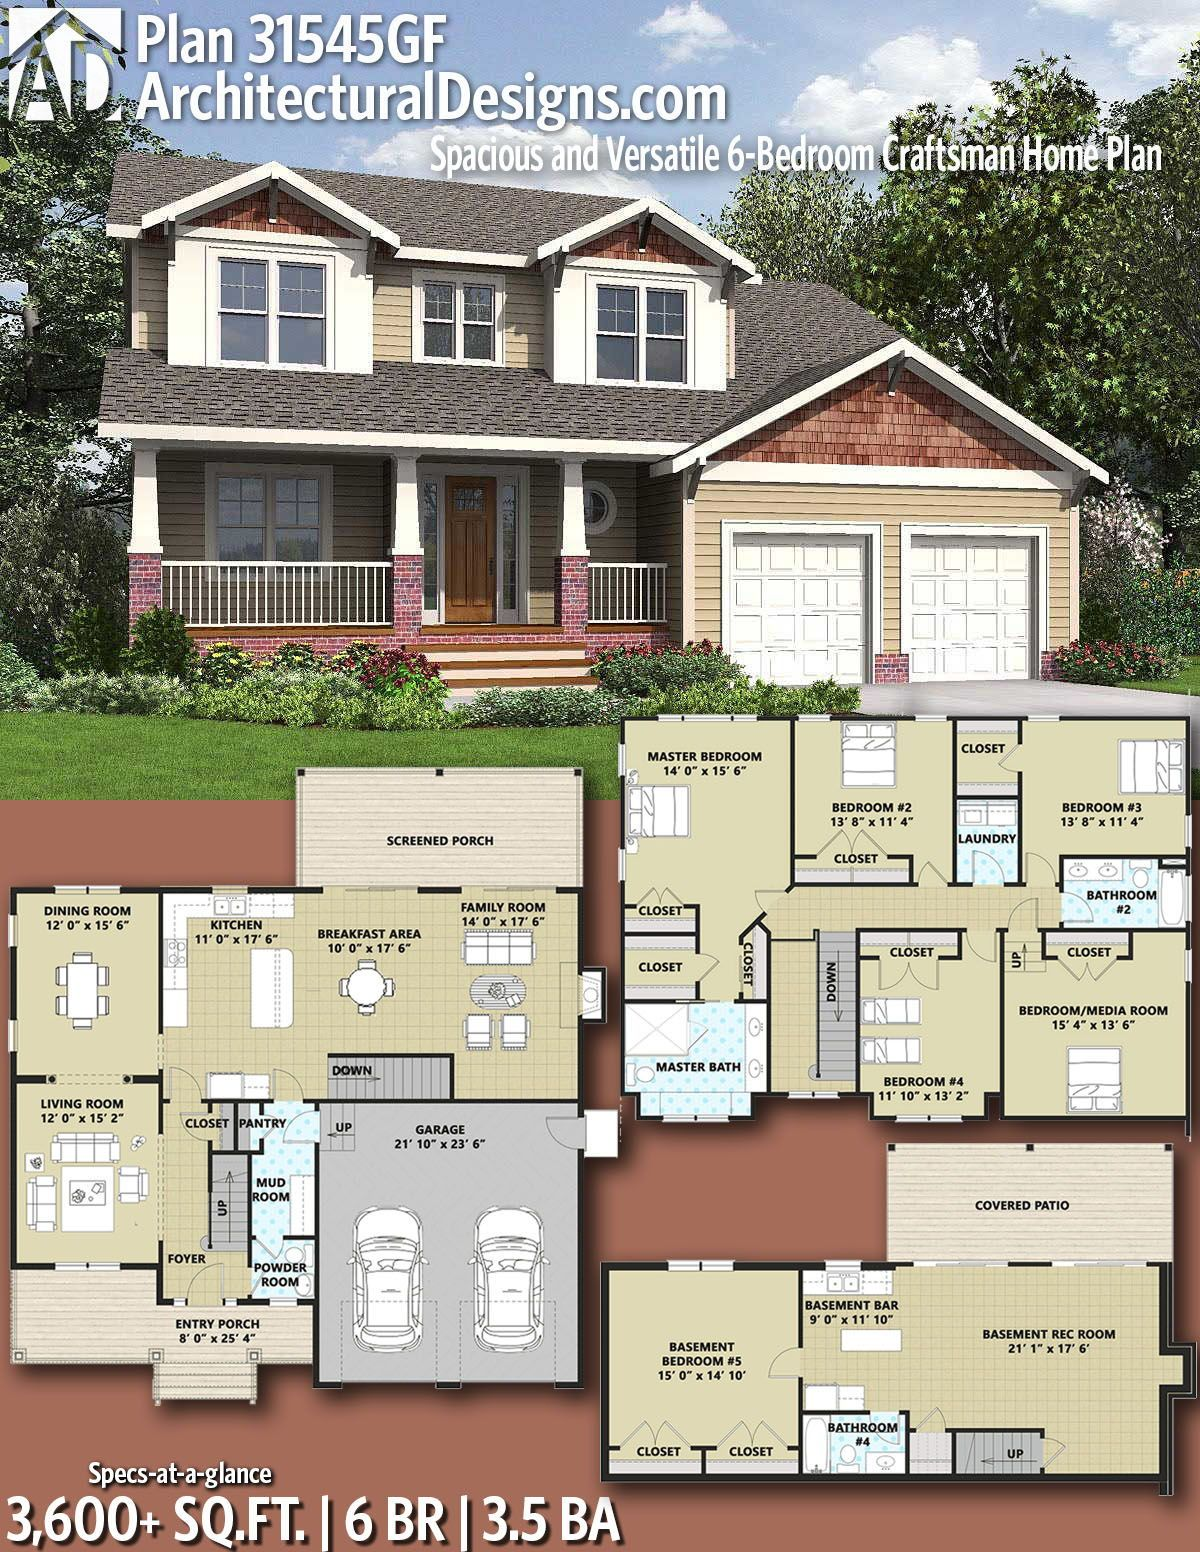 Plan 31545gf Spacious And Versatile 6 Bedroom Craftsman Home Plan Craftsman House Plans Craftsman House House Blueprints